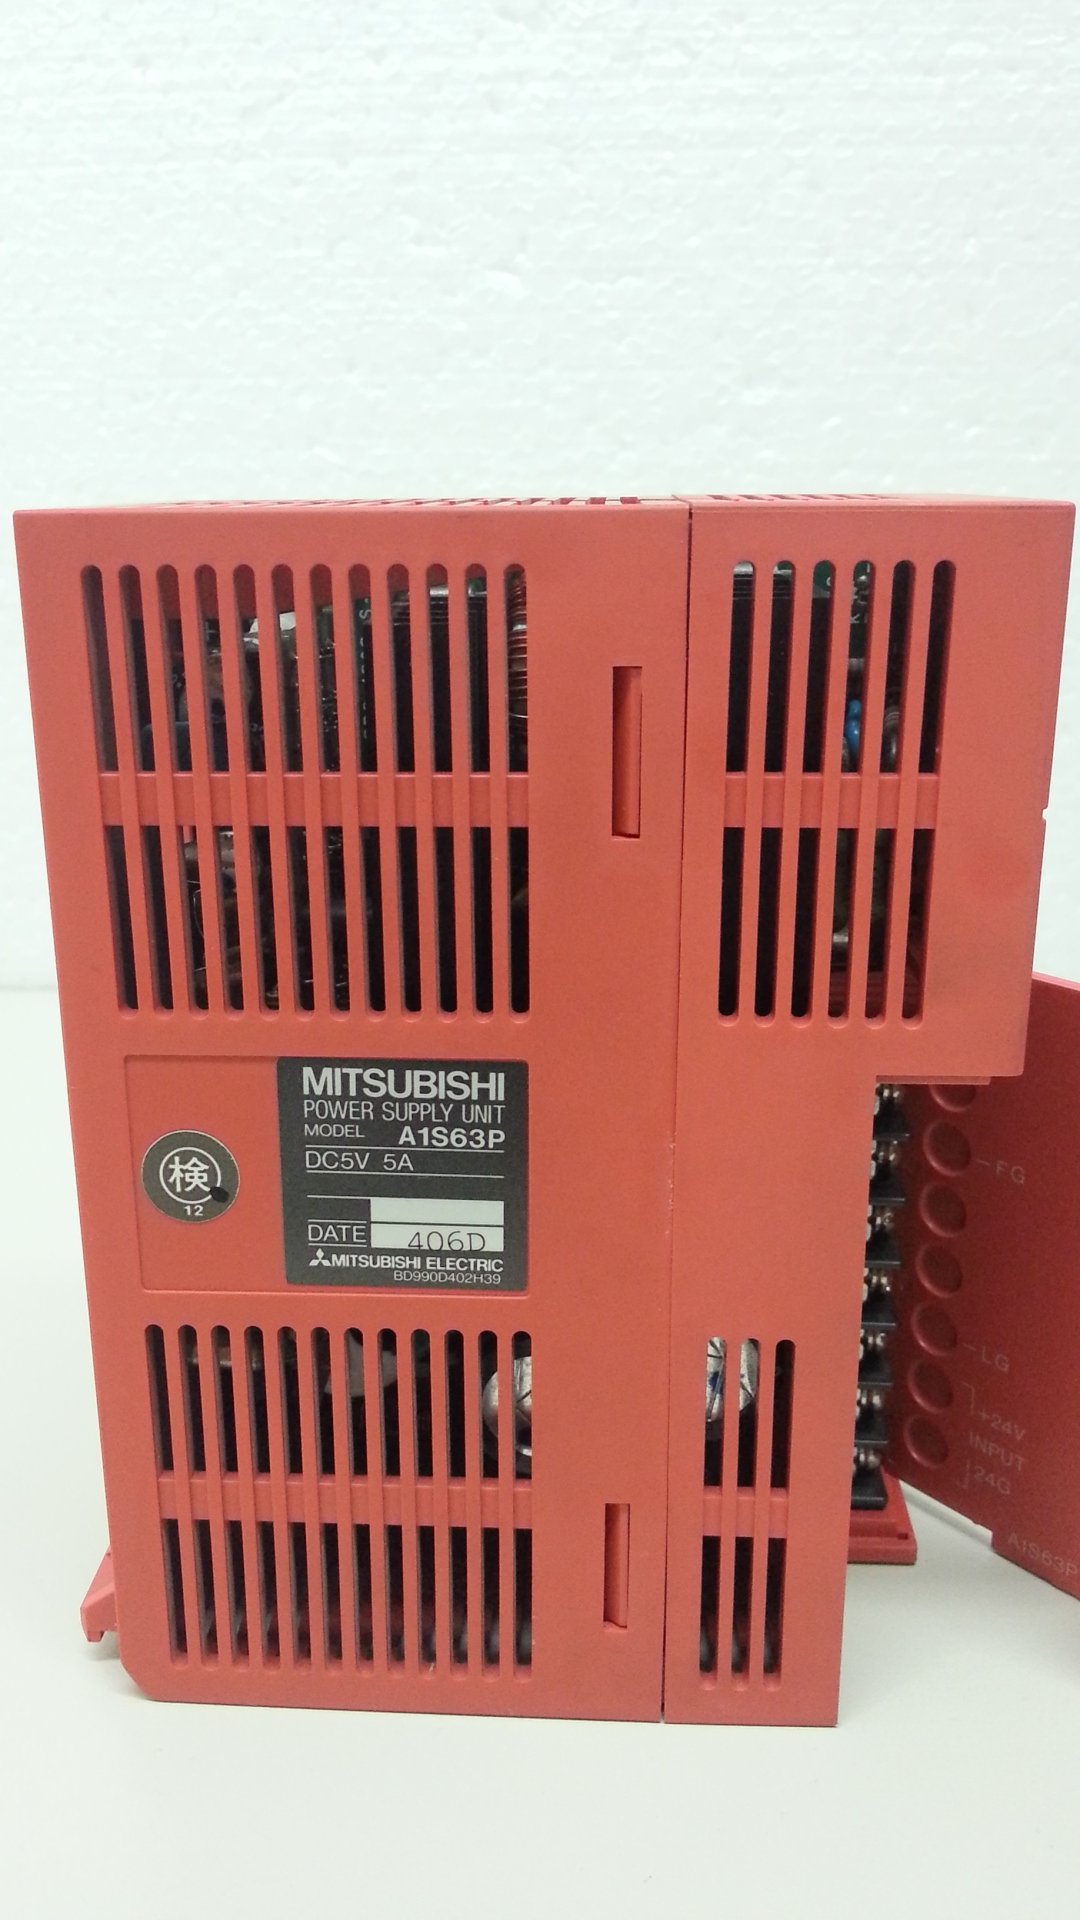 A1S63P Power supply unit 24VDC.